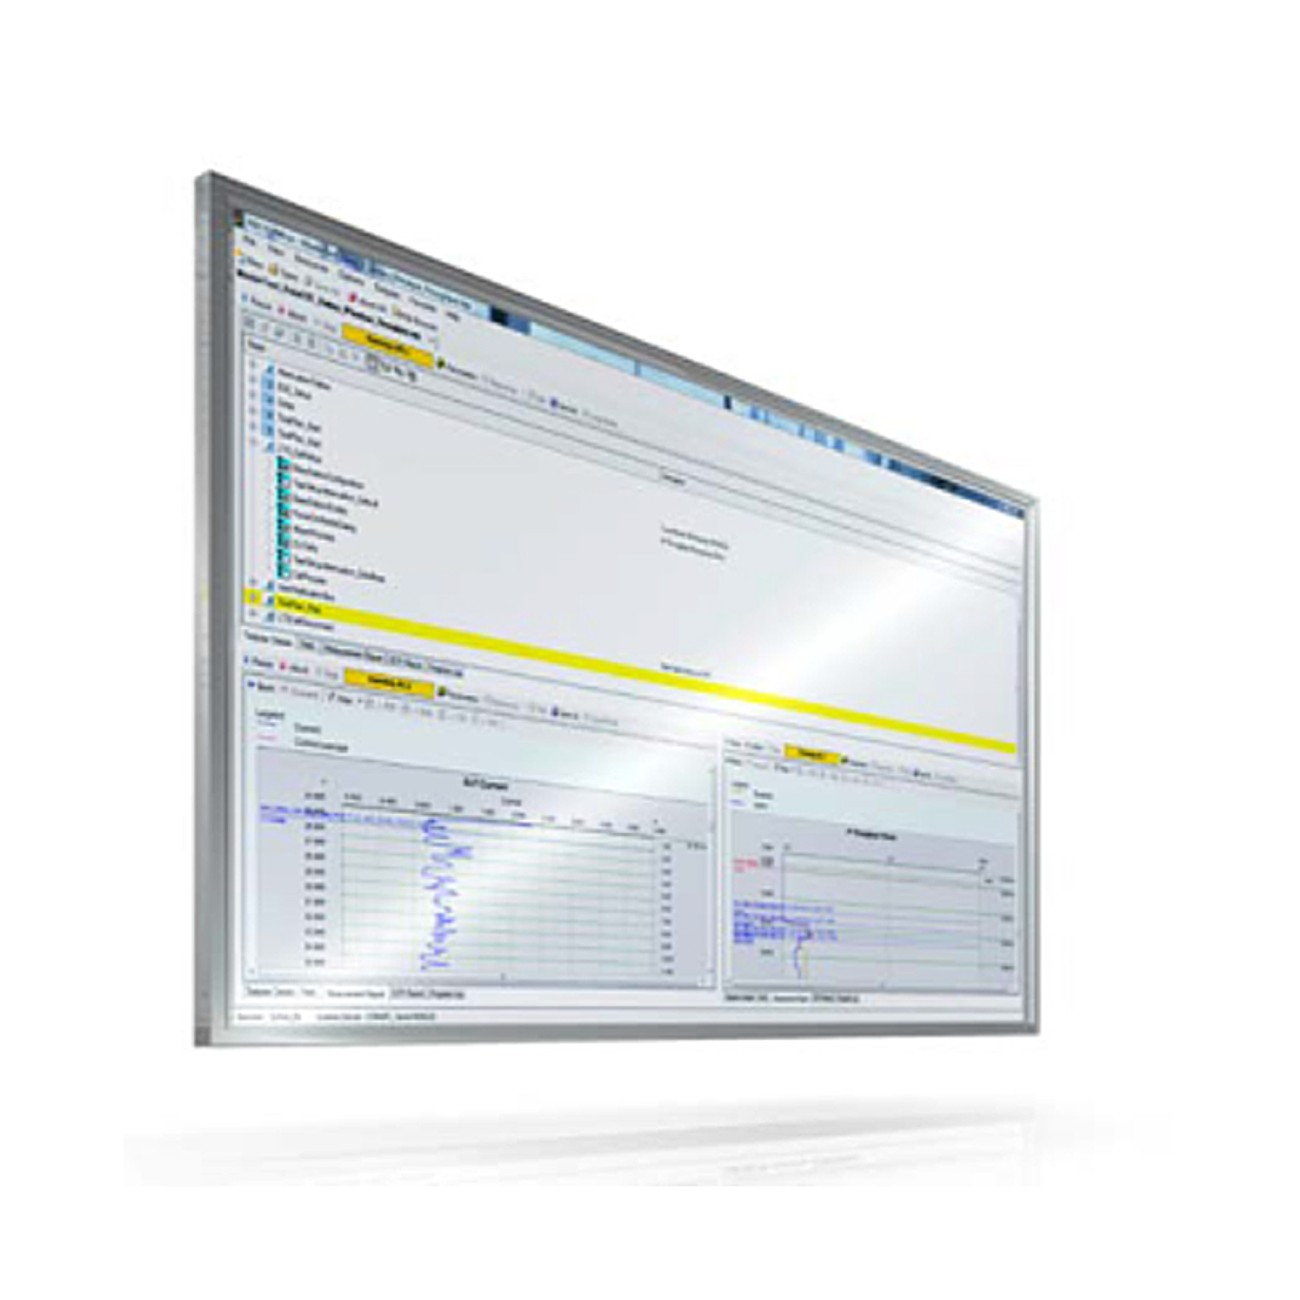 Intuitive graphical user interface.